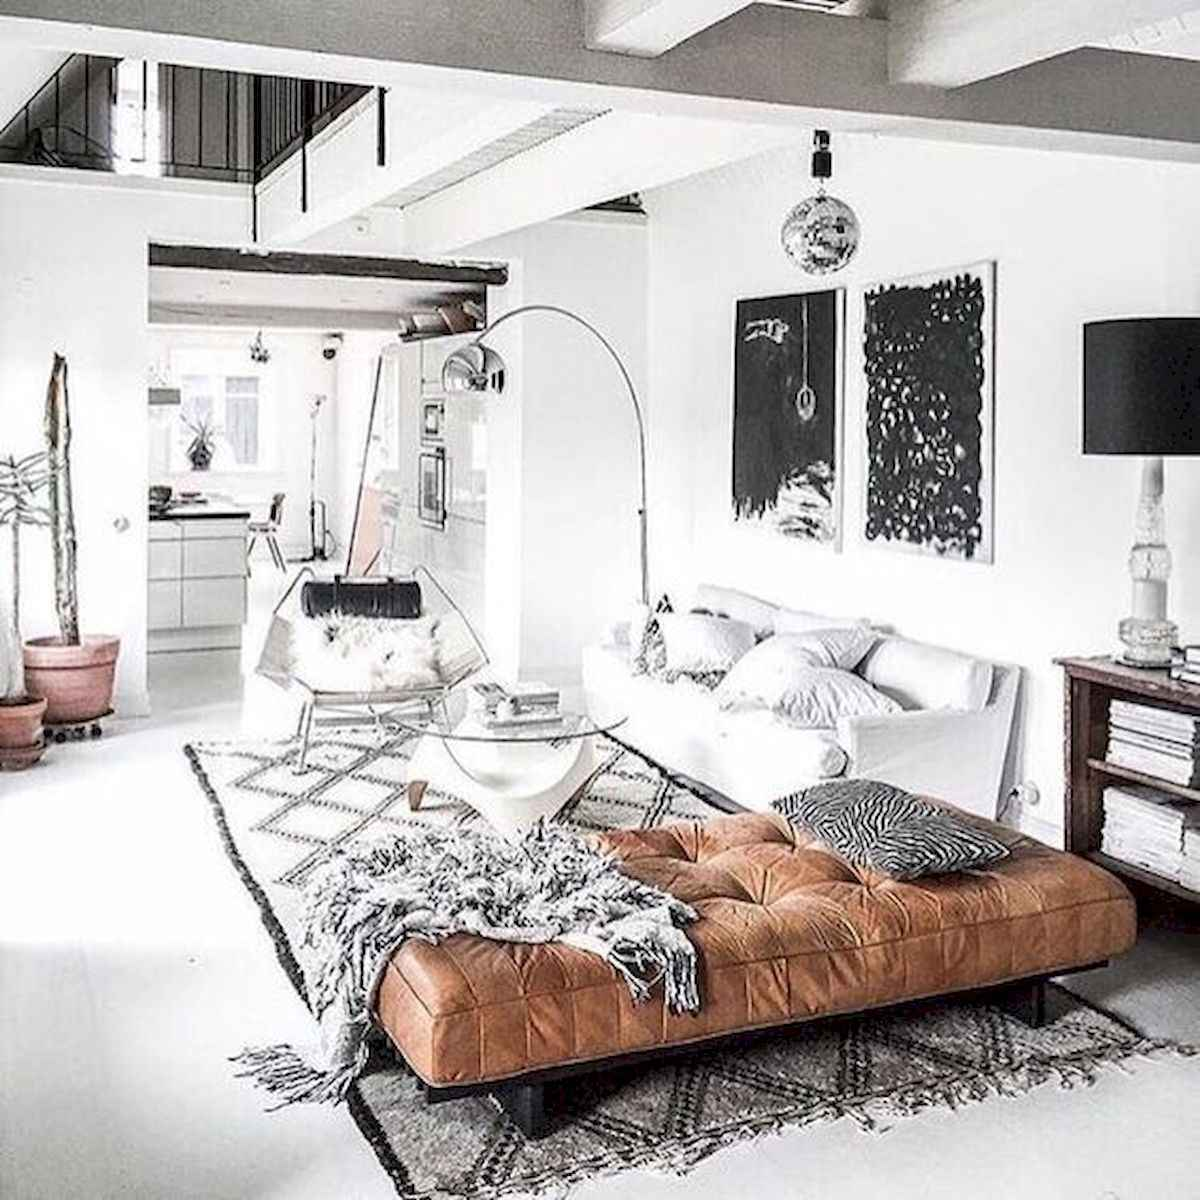 The Best Airbnb Cities For Home Decor Ideas: 40 Rustic Studio Apartment Decor Ideas